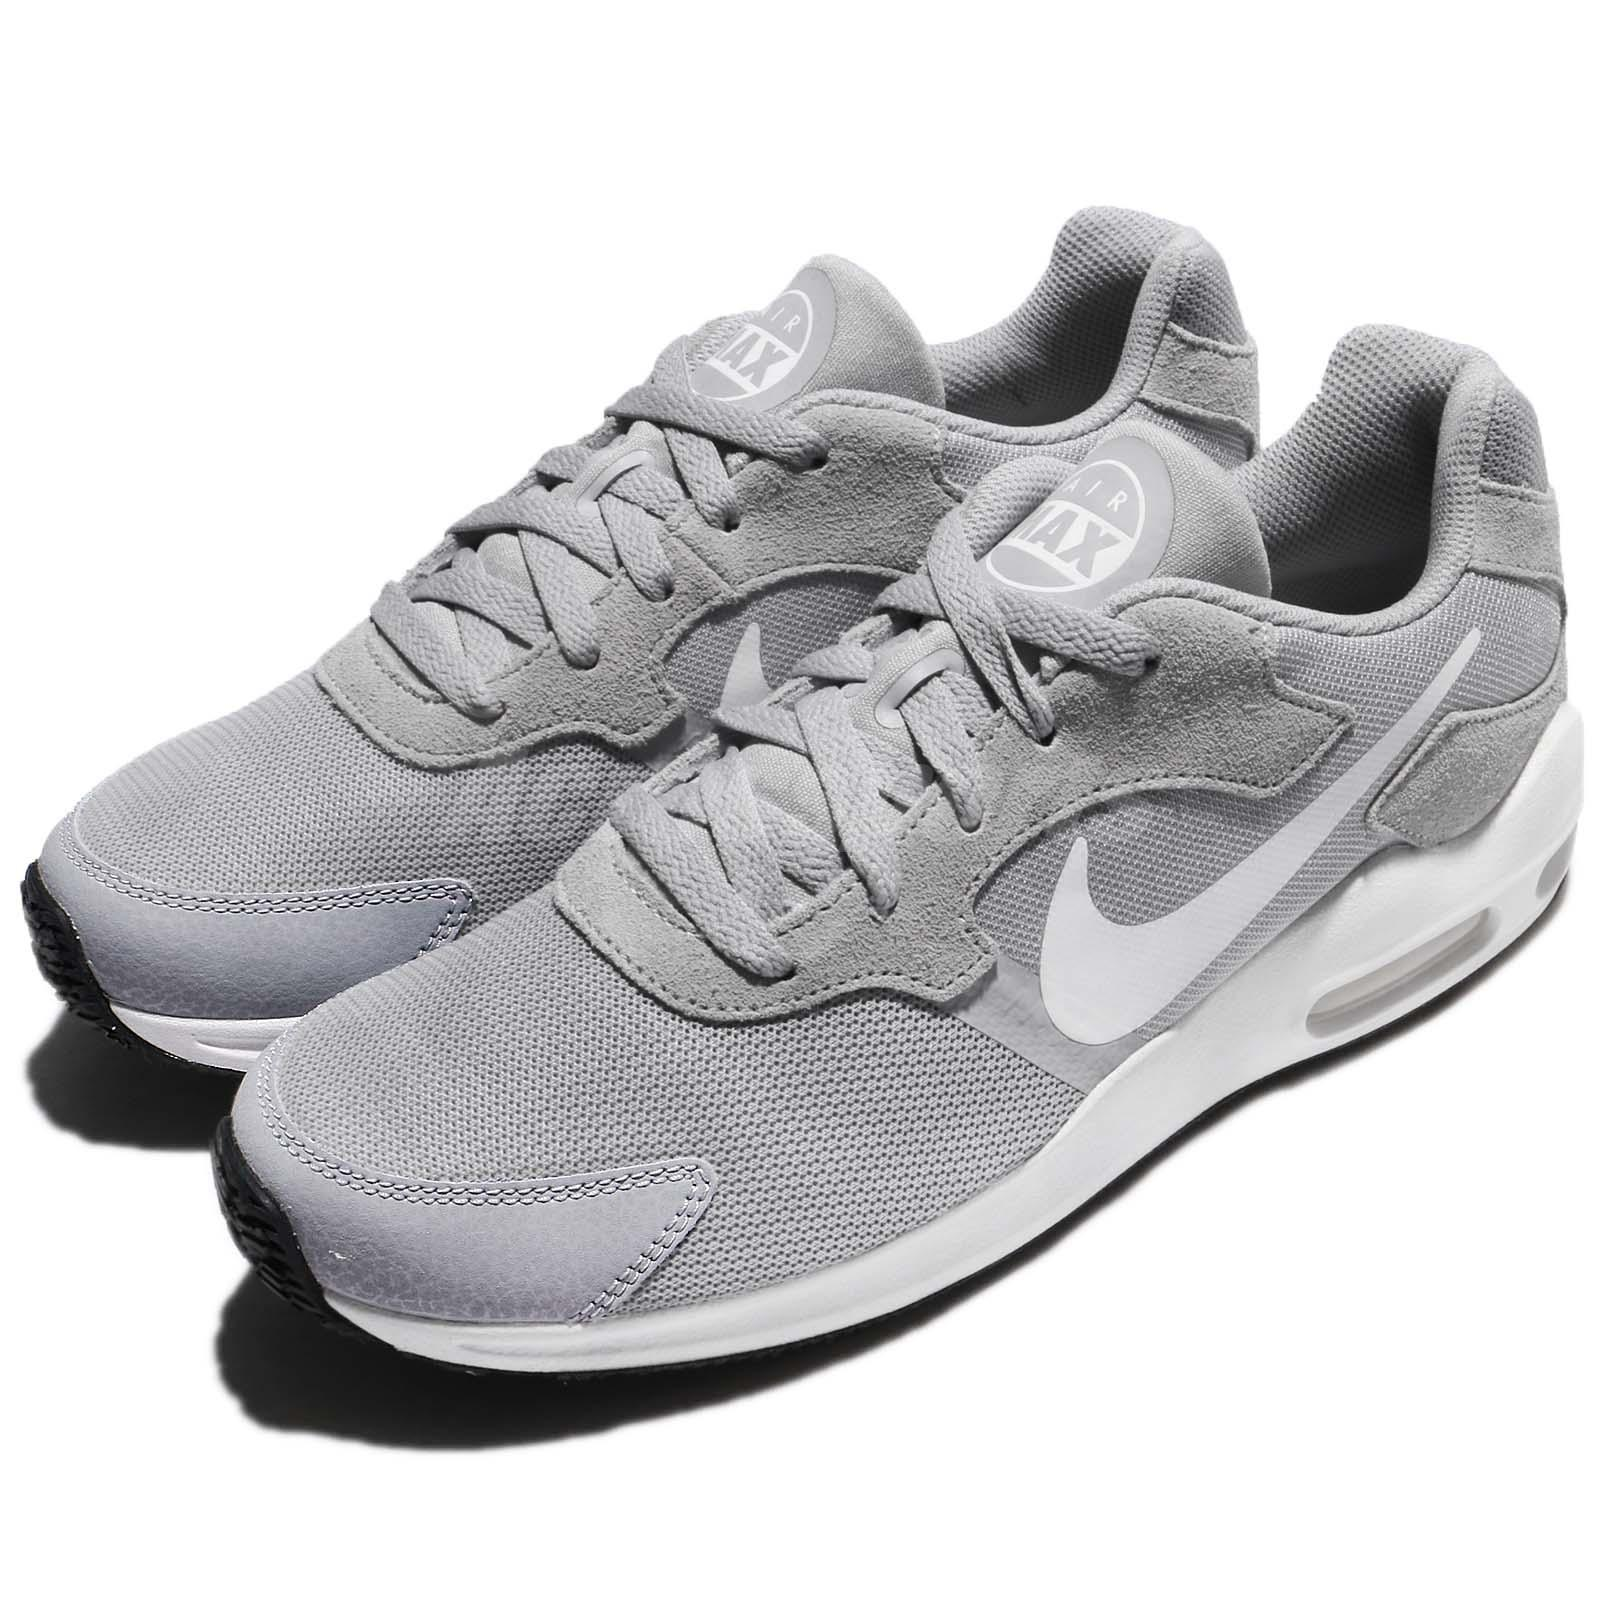 e57568e8b0c Details about Nike Air Max Guile Wolf Grey White Men Running Shoes Sneakers  Trainer 916768-001